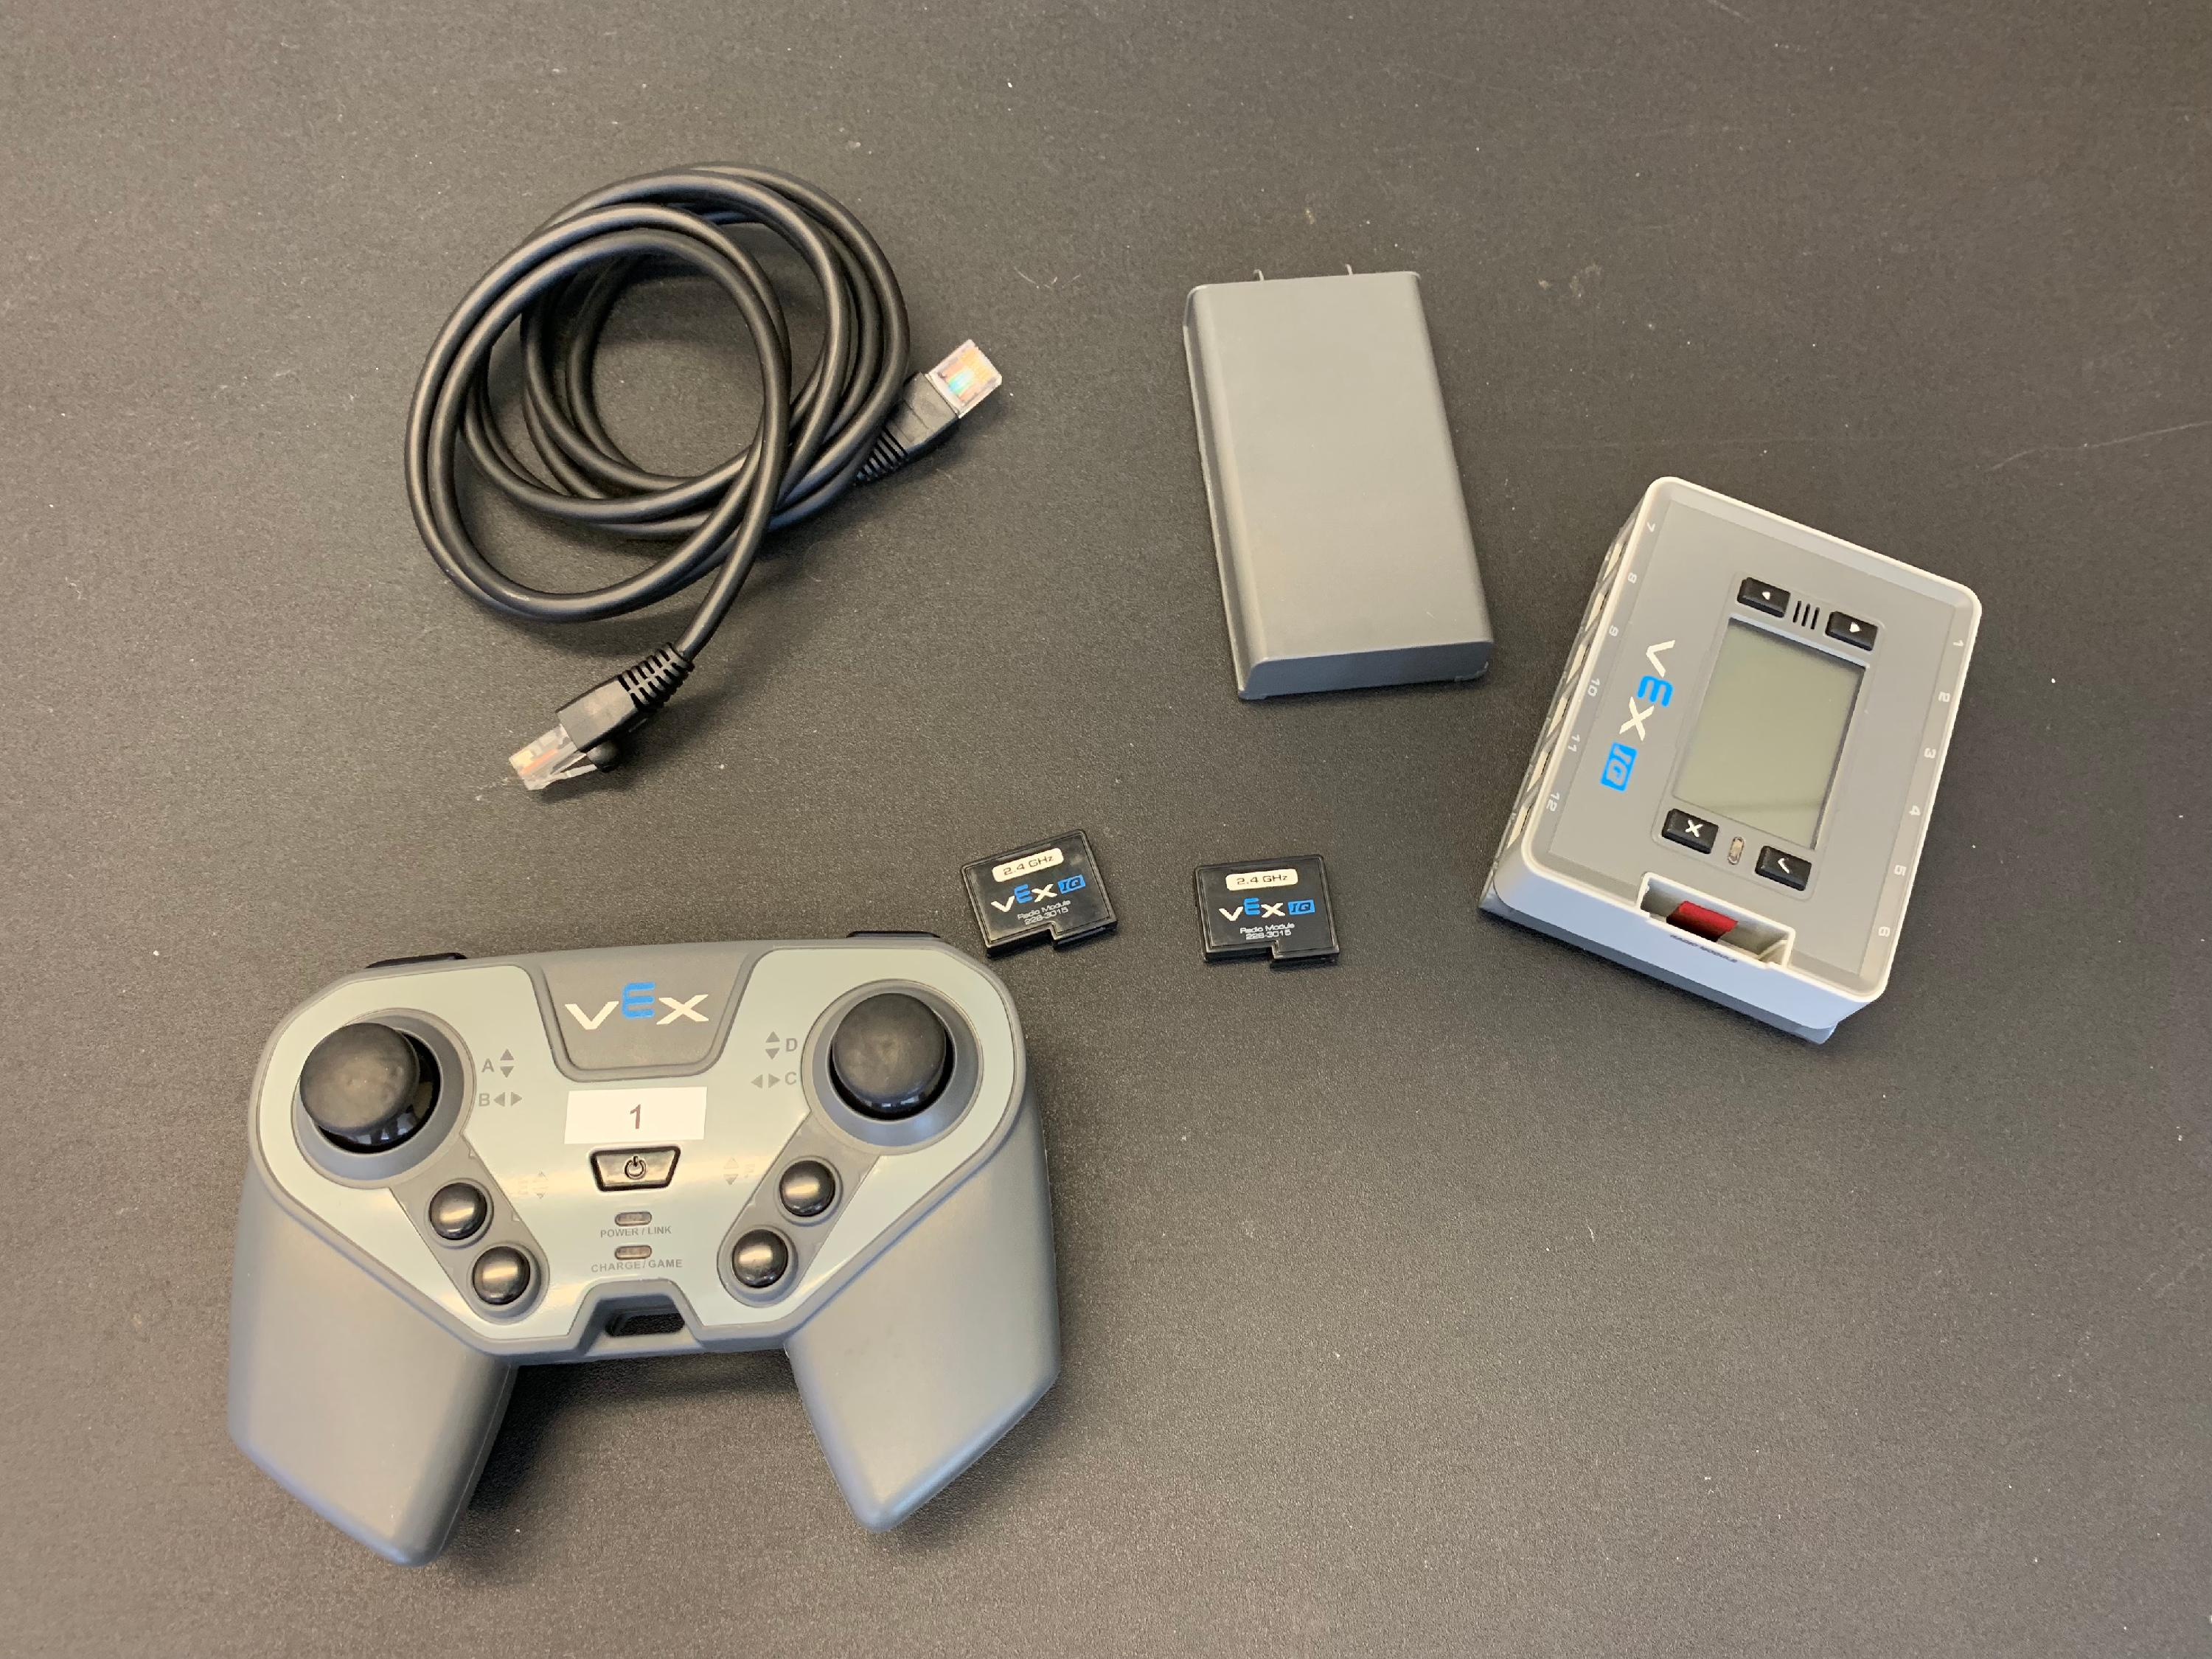 How to Pair the VEX IQ Robot Brain with the VEX IQ Controller for